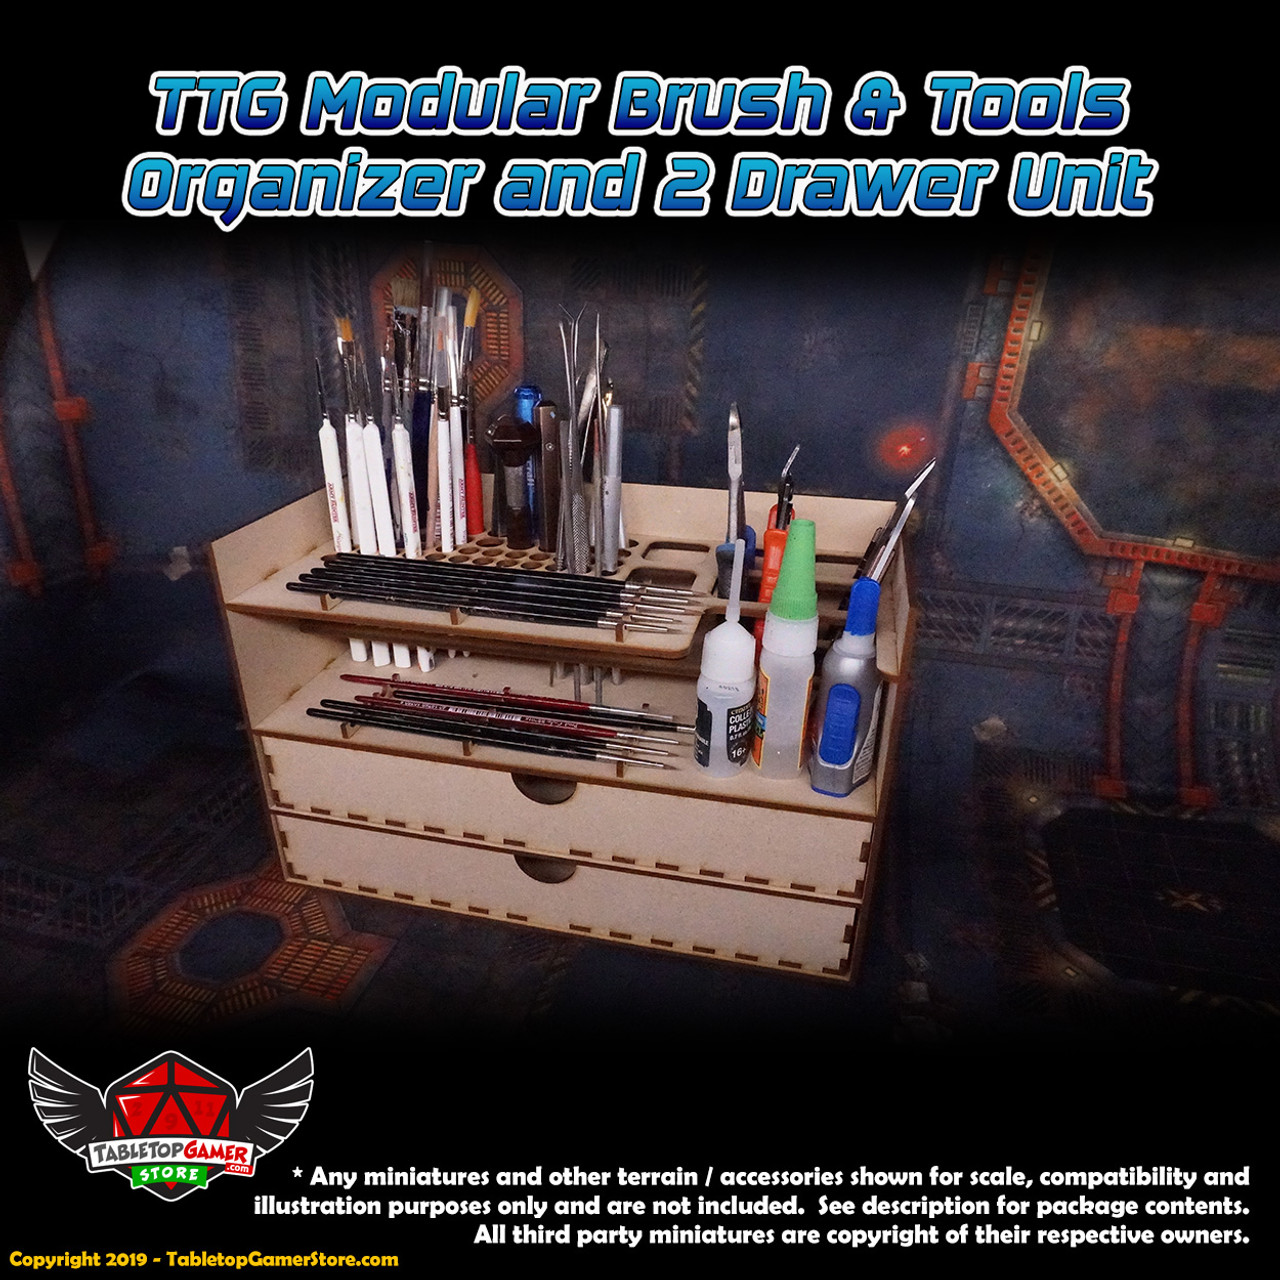 TTG Modular Hobby Brush & Tools Organizer and 2 Drawer Unit